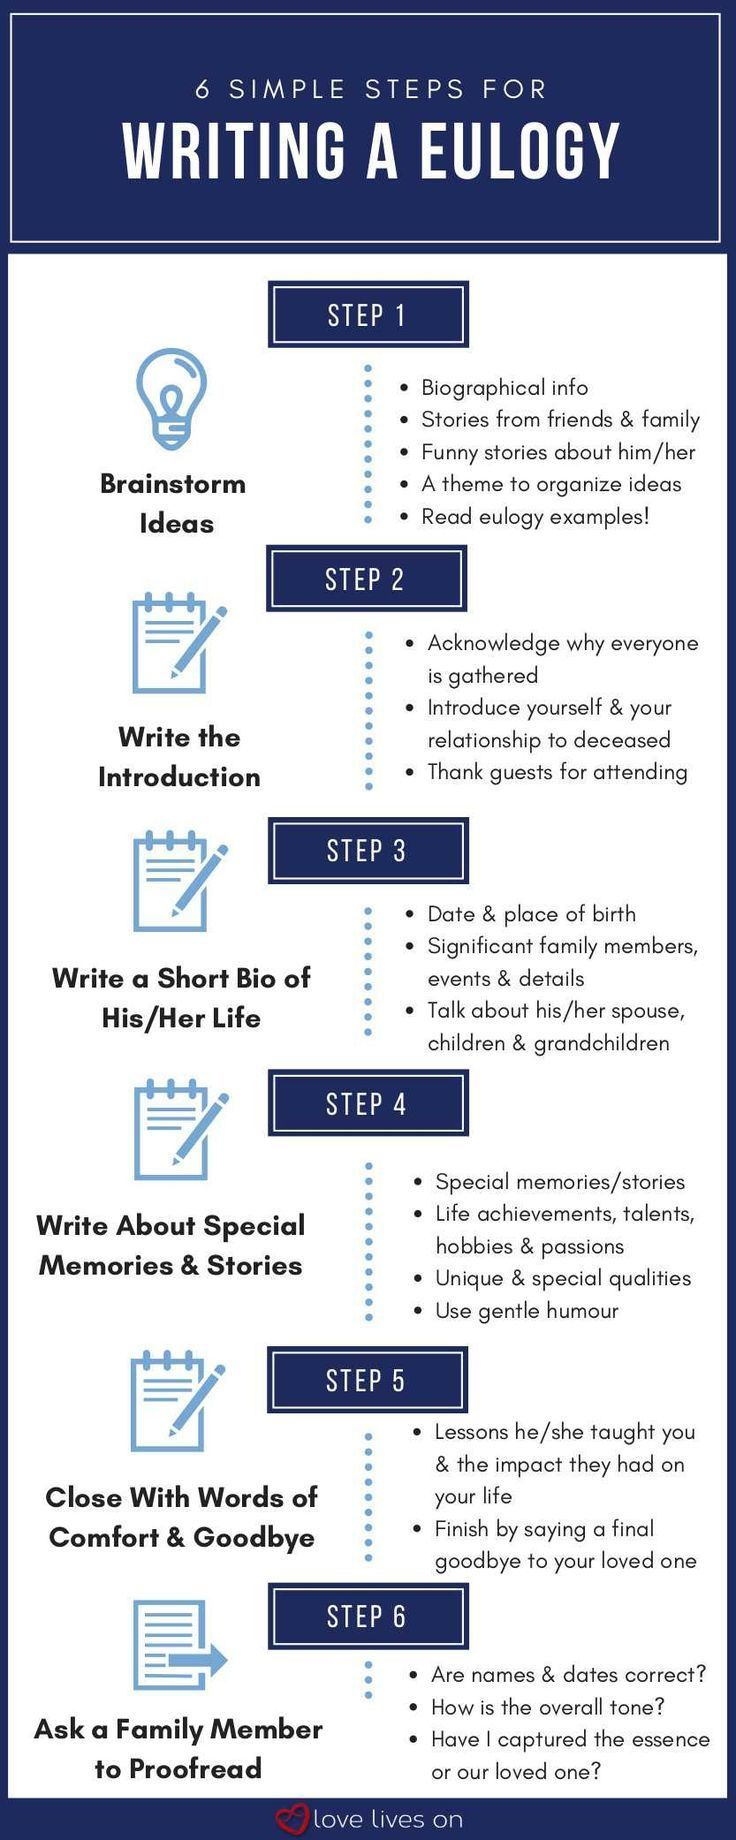 Infographic: How to Write a Eulogy in 6 Simple Steps